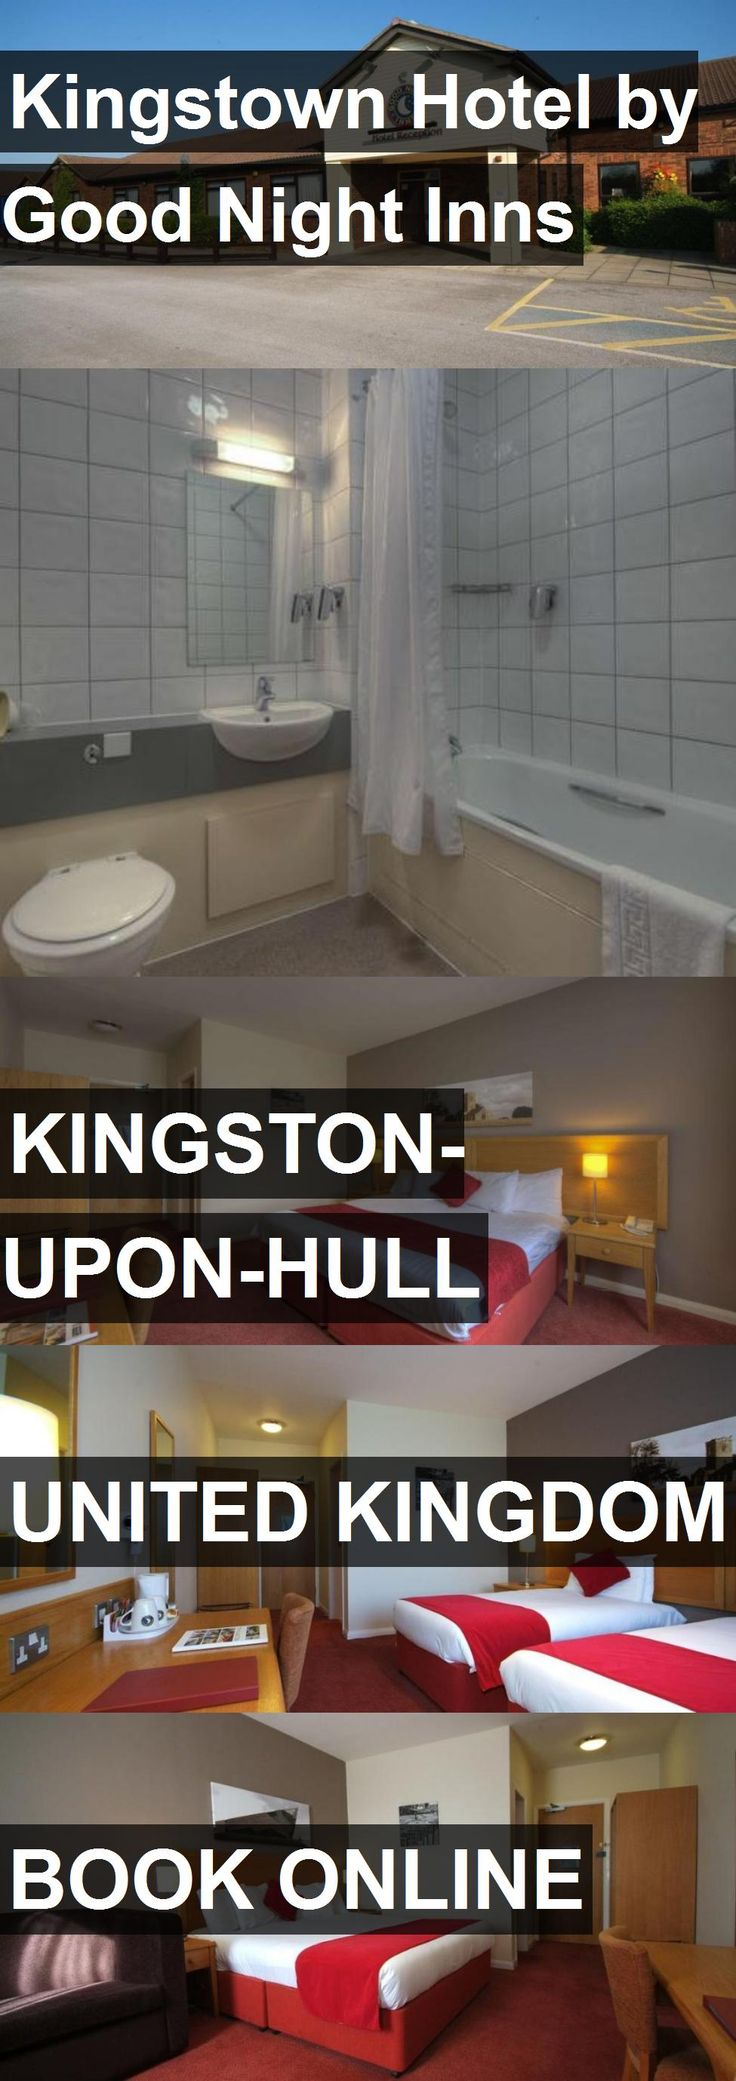 Kingstown Hotel by Good Night Inns in Kingston-Upon-Hull, United Kingdom. For more information, photos, reviews and best prices please follow the link. #UnitedKingdom #Kingston-Upon-Hull #travel #vacation #hotel